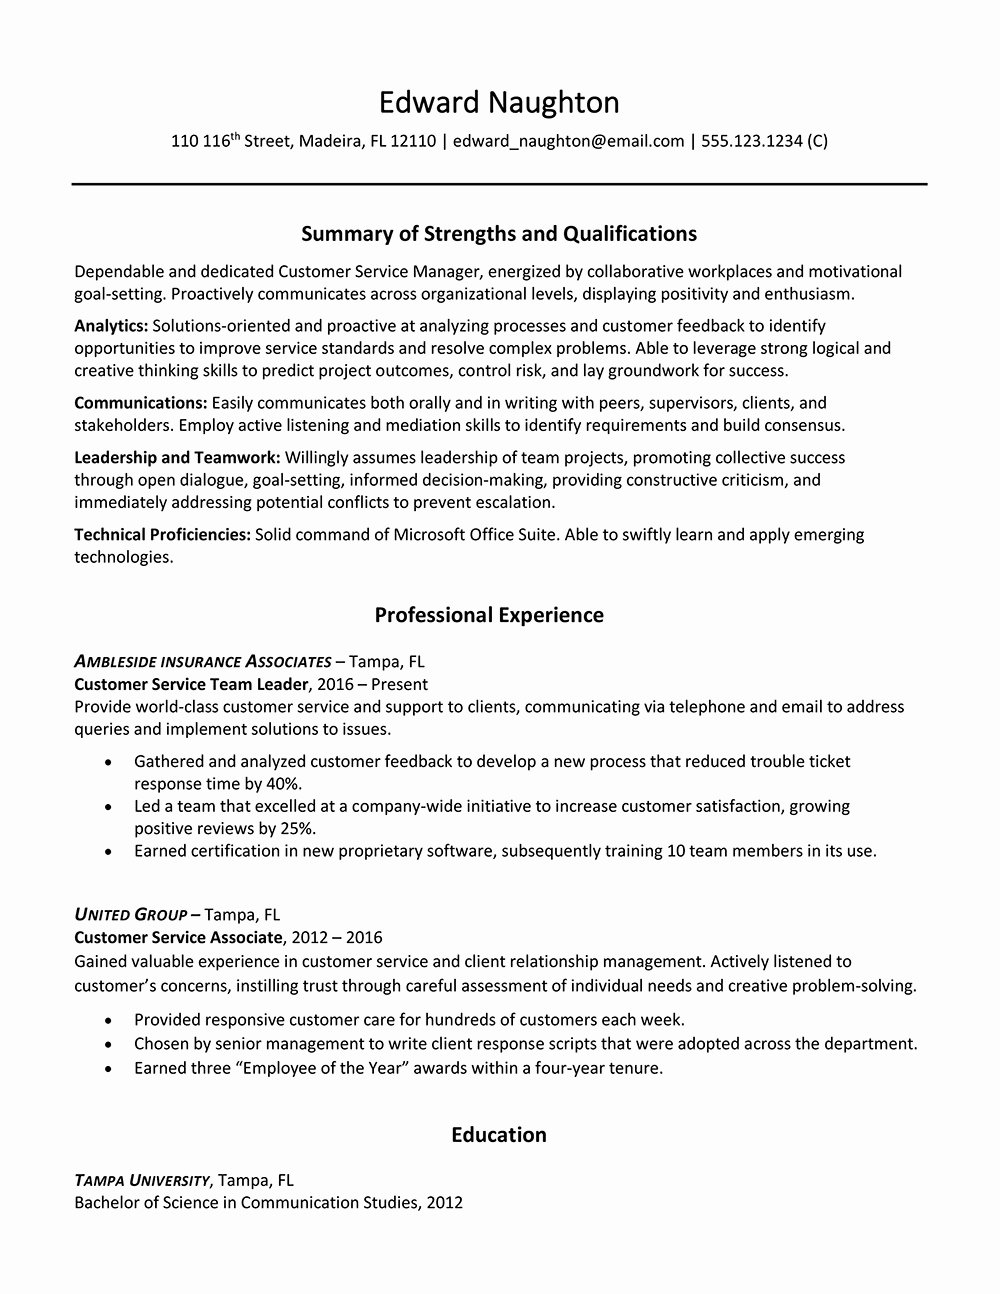 How to Include Puter Skills In Resume